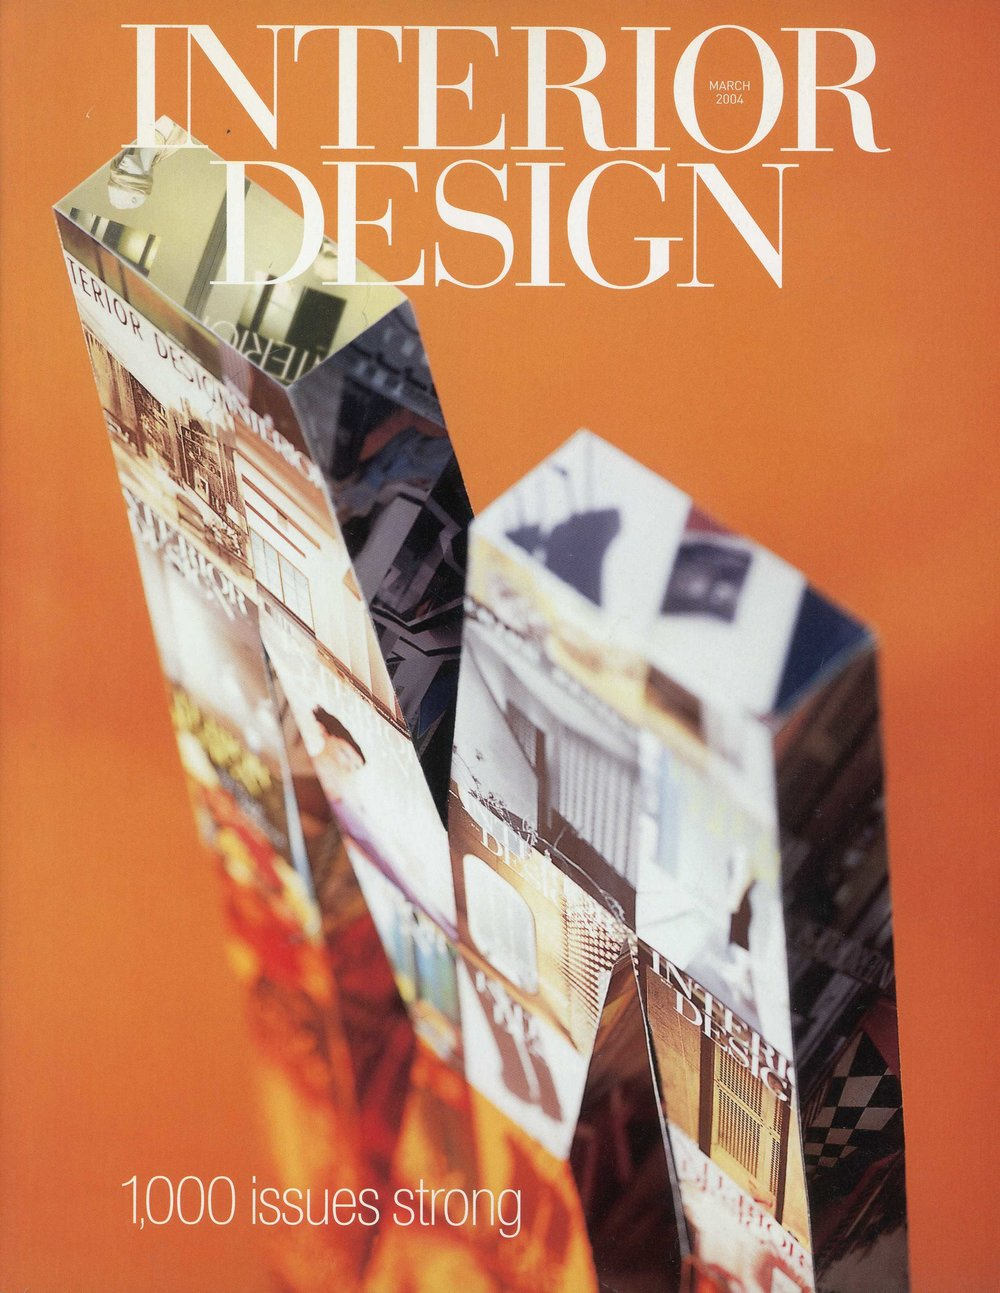 Interior Design_Mar 04_SS Bio Full Article_Page_1.jpg